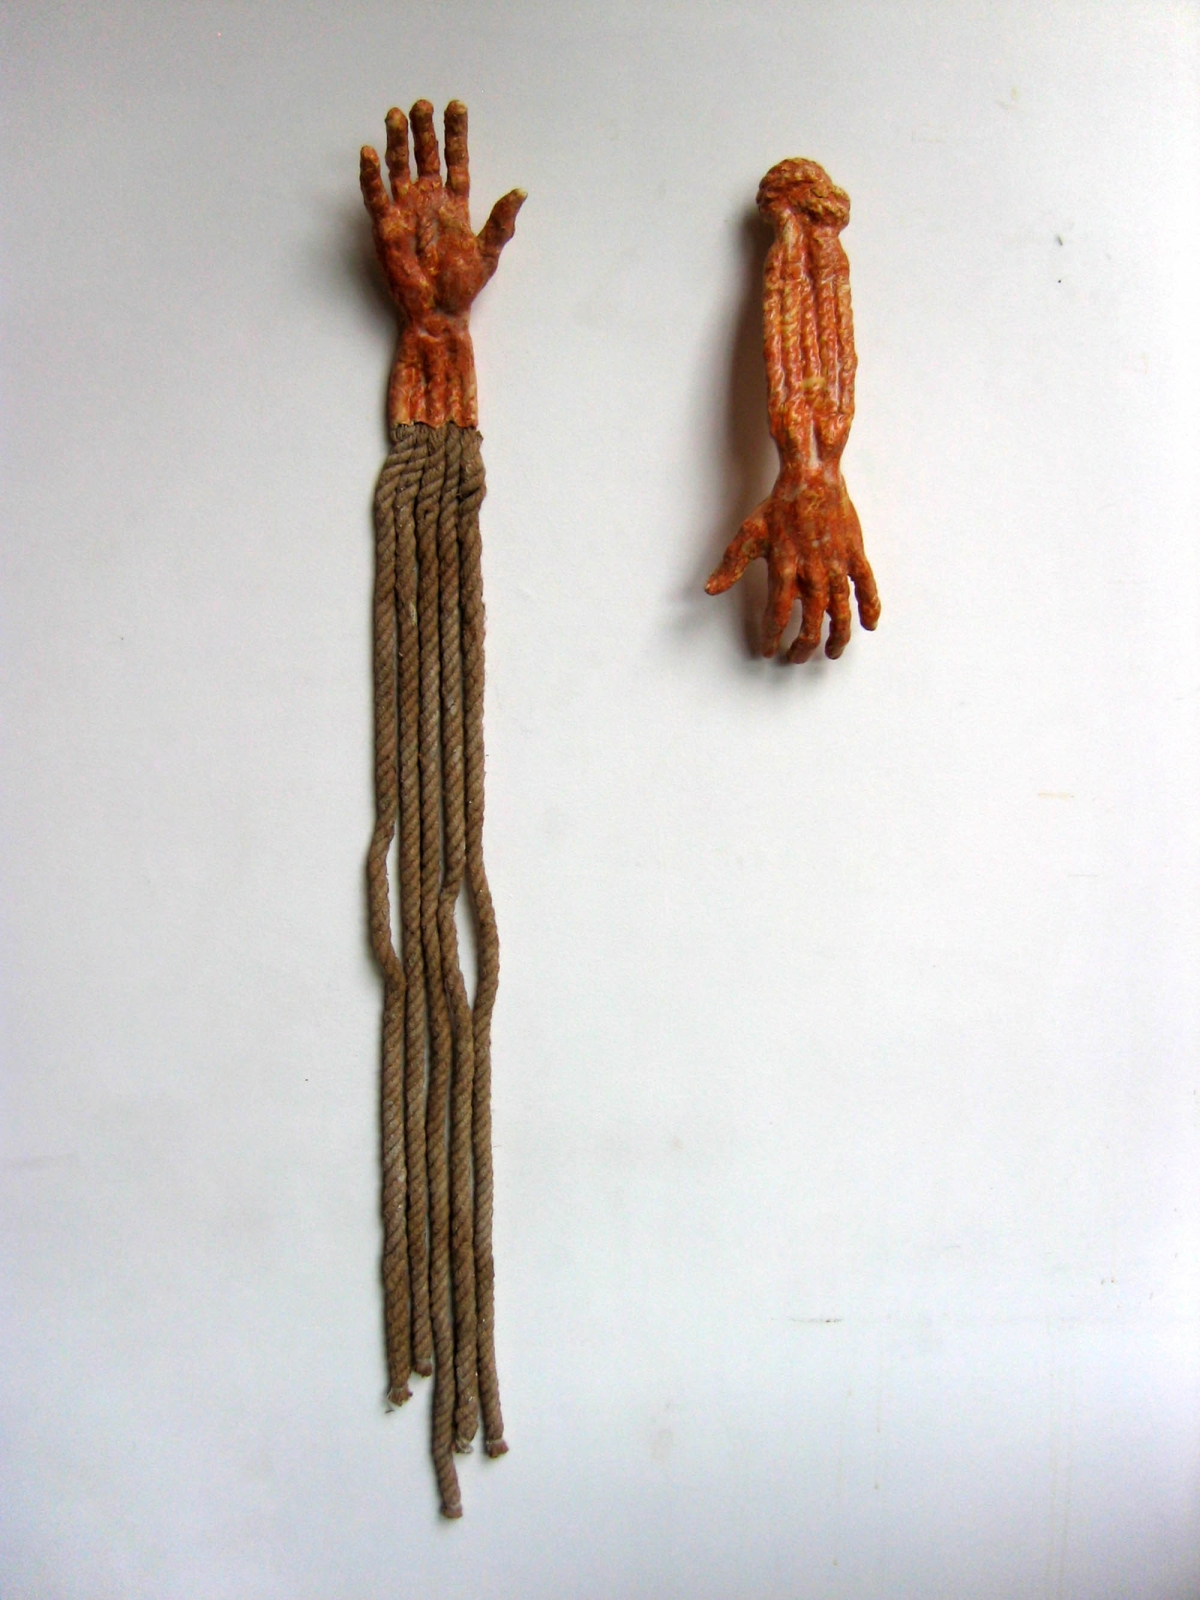 Hands II, 2007, ceramic and rope, 45 cm x 17 cm x 10 cm and 140 cm x 16 cm x 5 cm